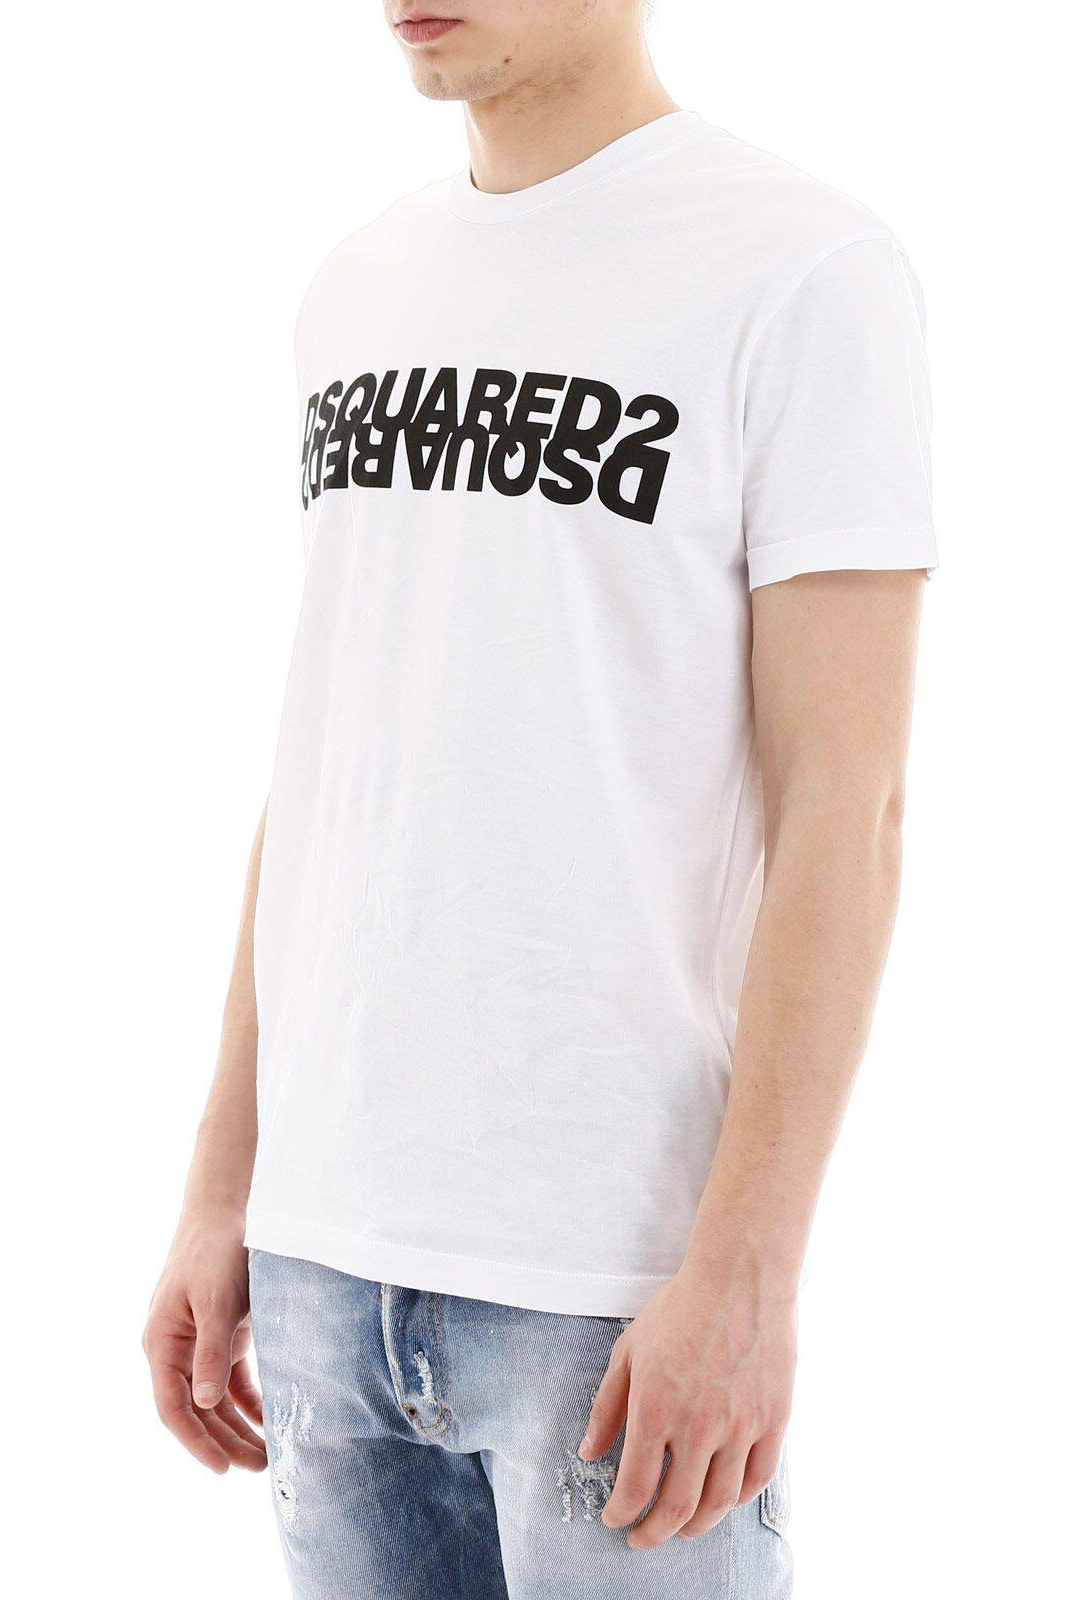 Tee-shirts  Dsquared2 S74GD0635 963X WHITE